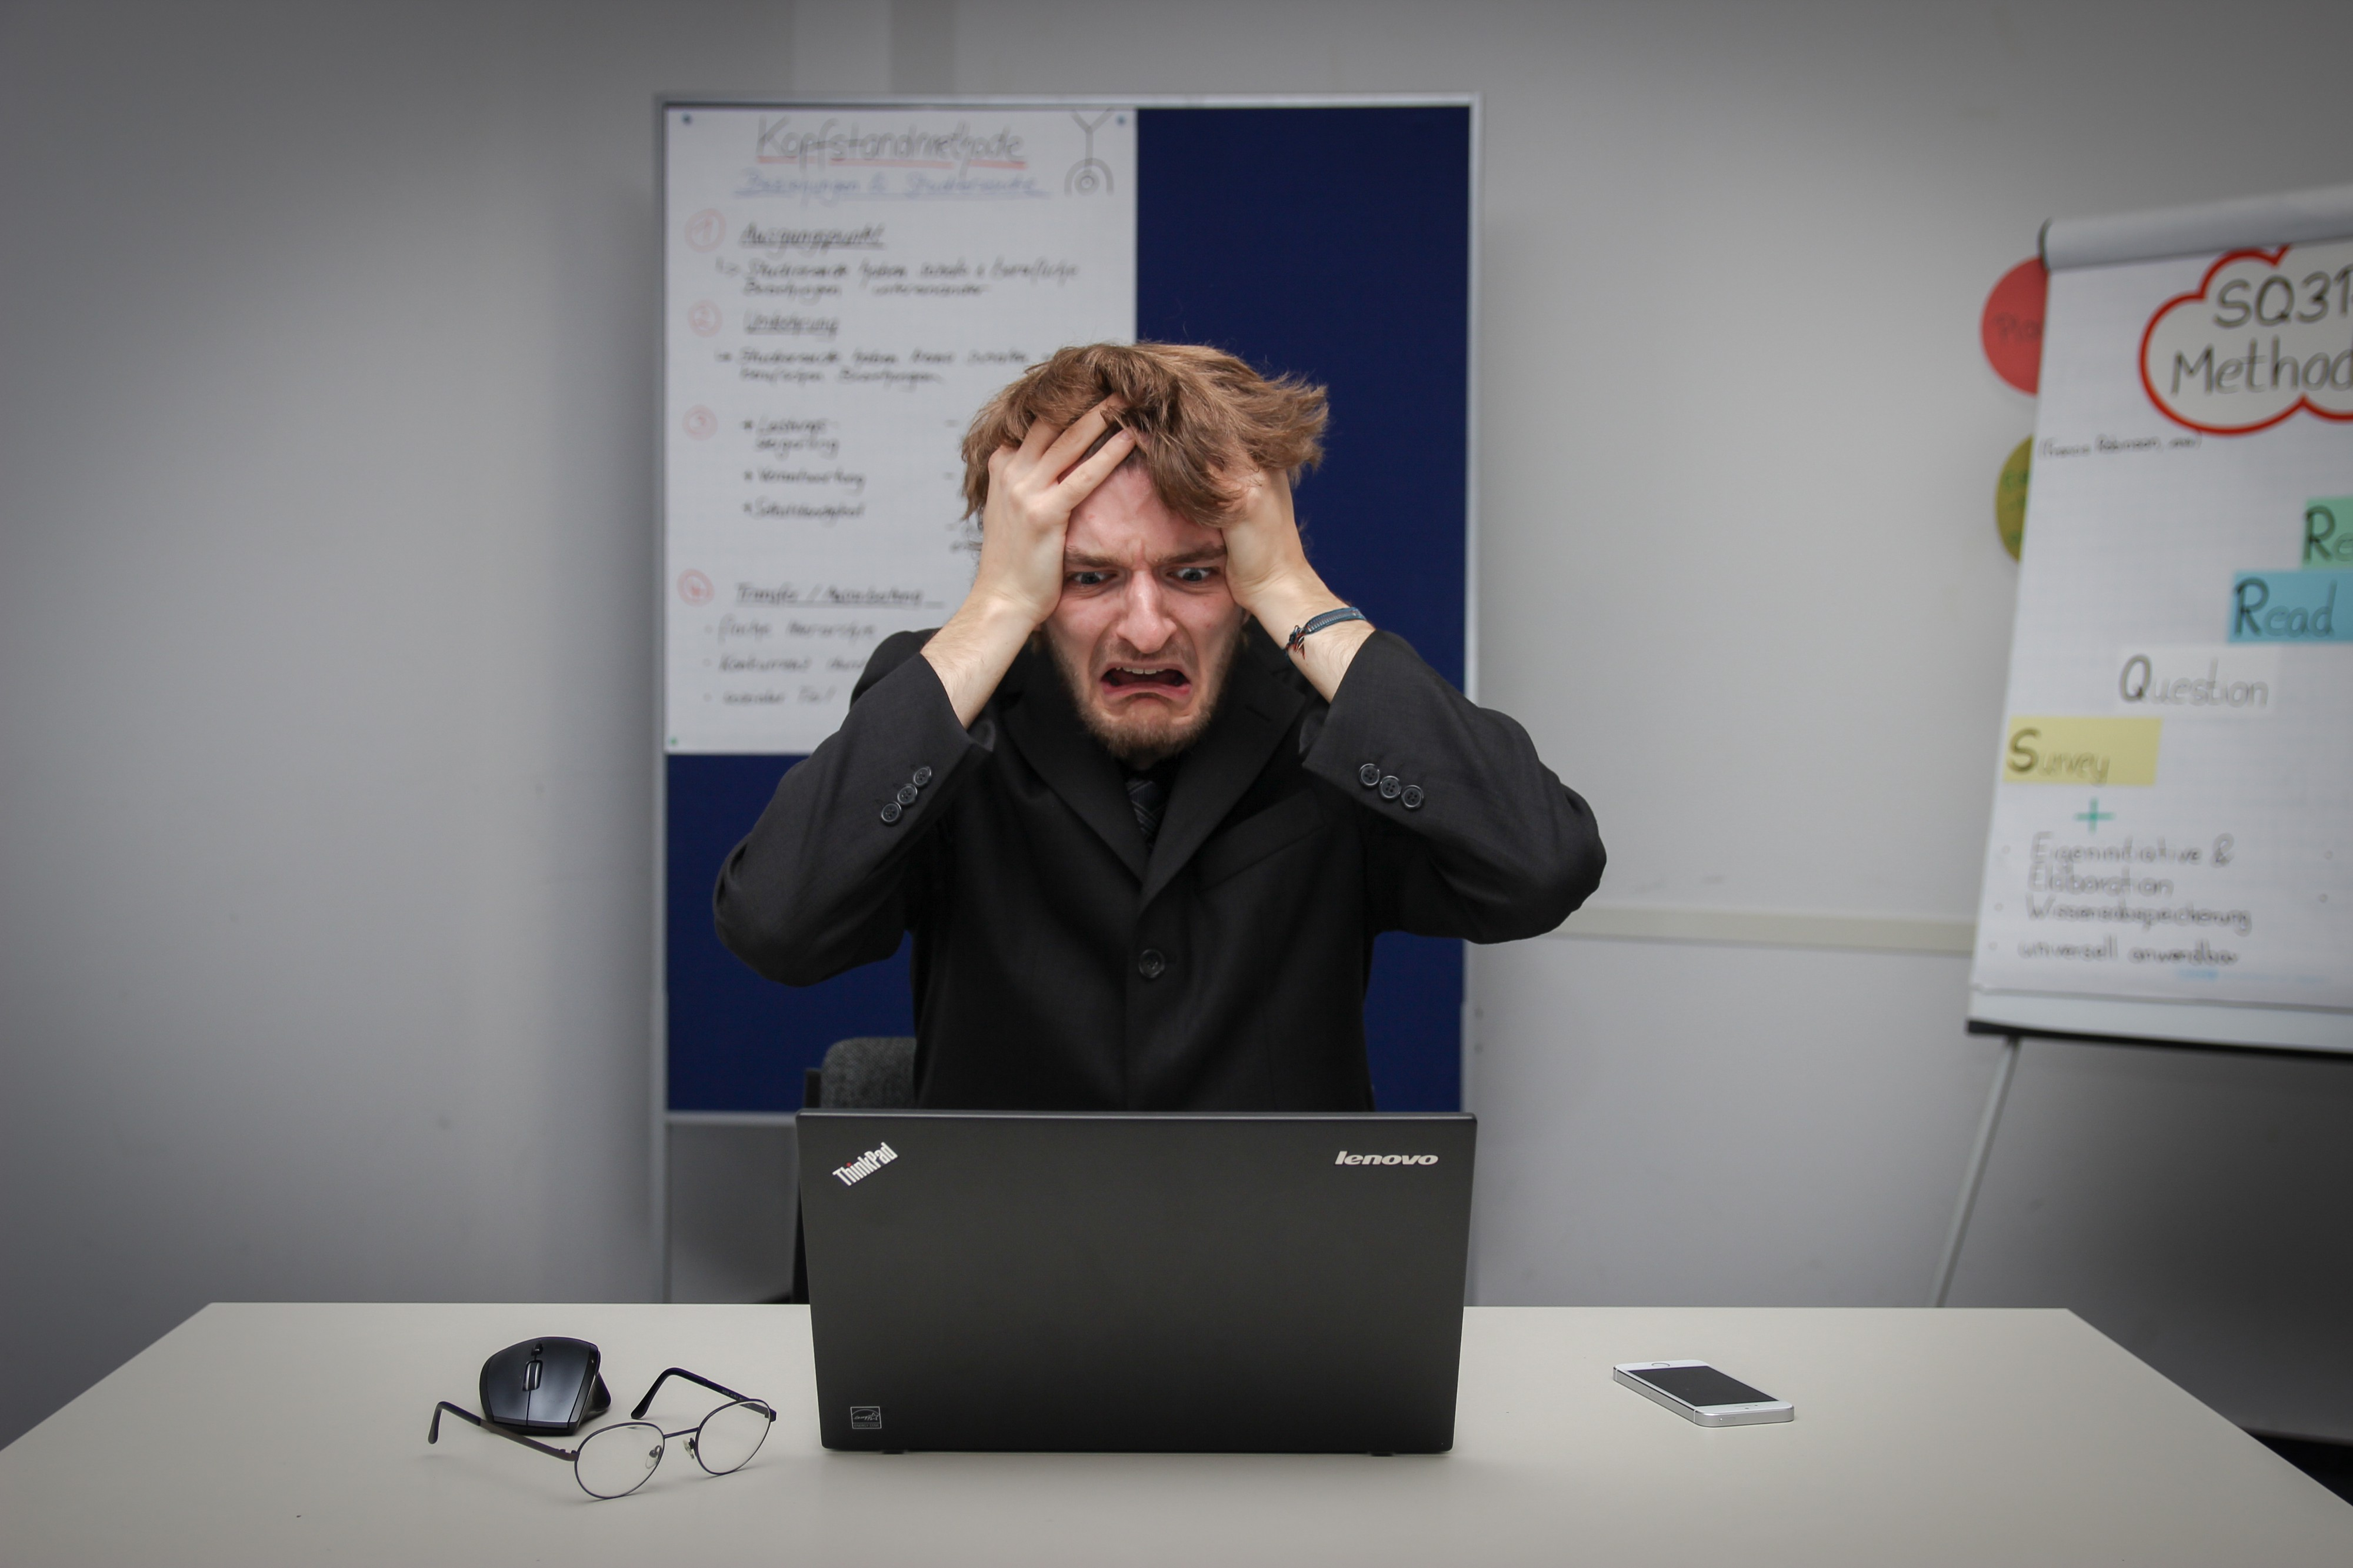 A man in a black suit looks at his laptop in pure frustration.